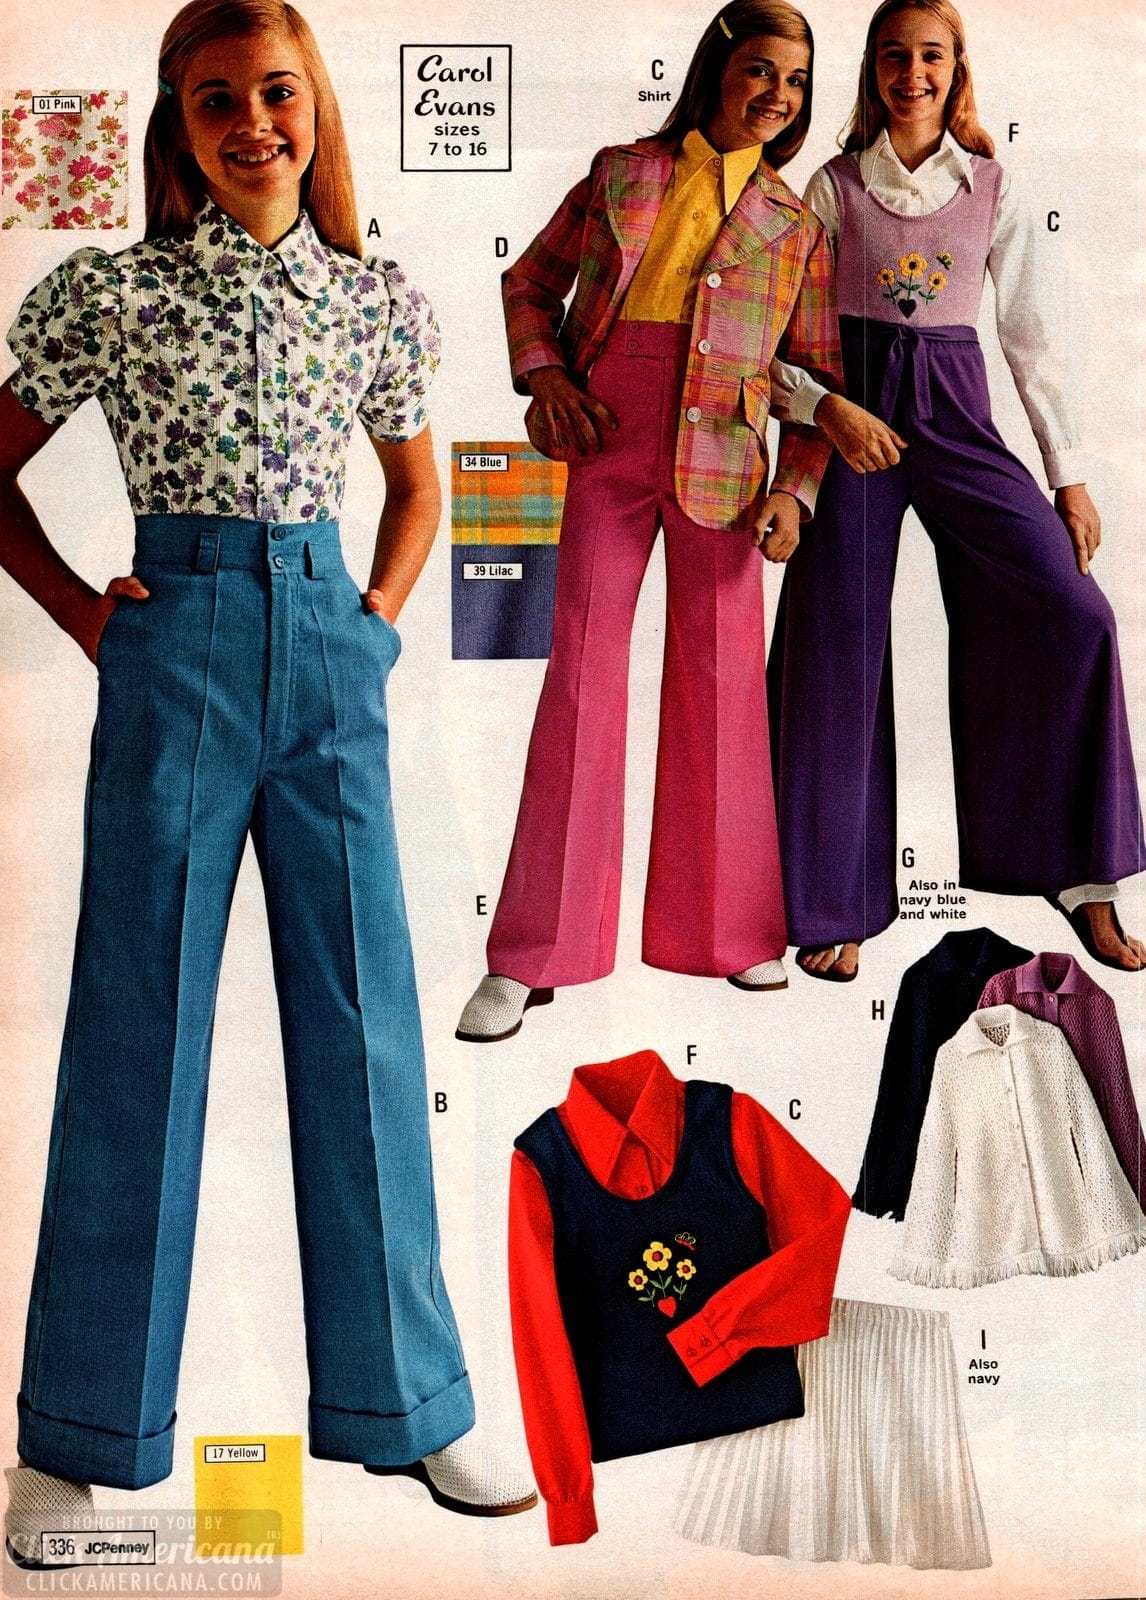 Vintage 70s school clothes for girls in spring colors with floral patterns and embroidery